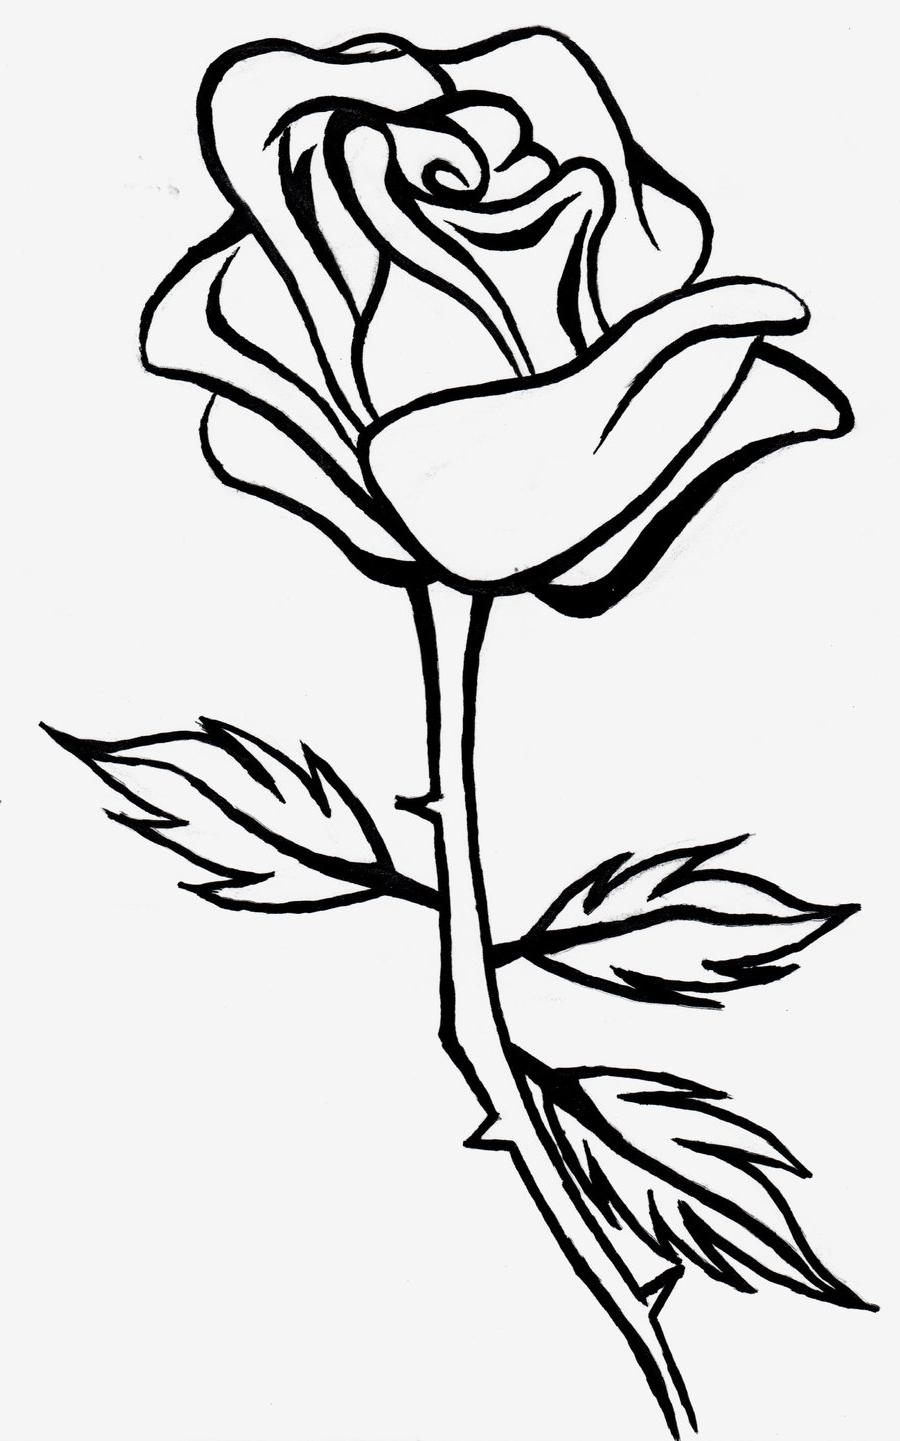 Tea Rose Clipart Black And White: Black And White Rose Clipart